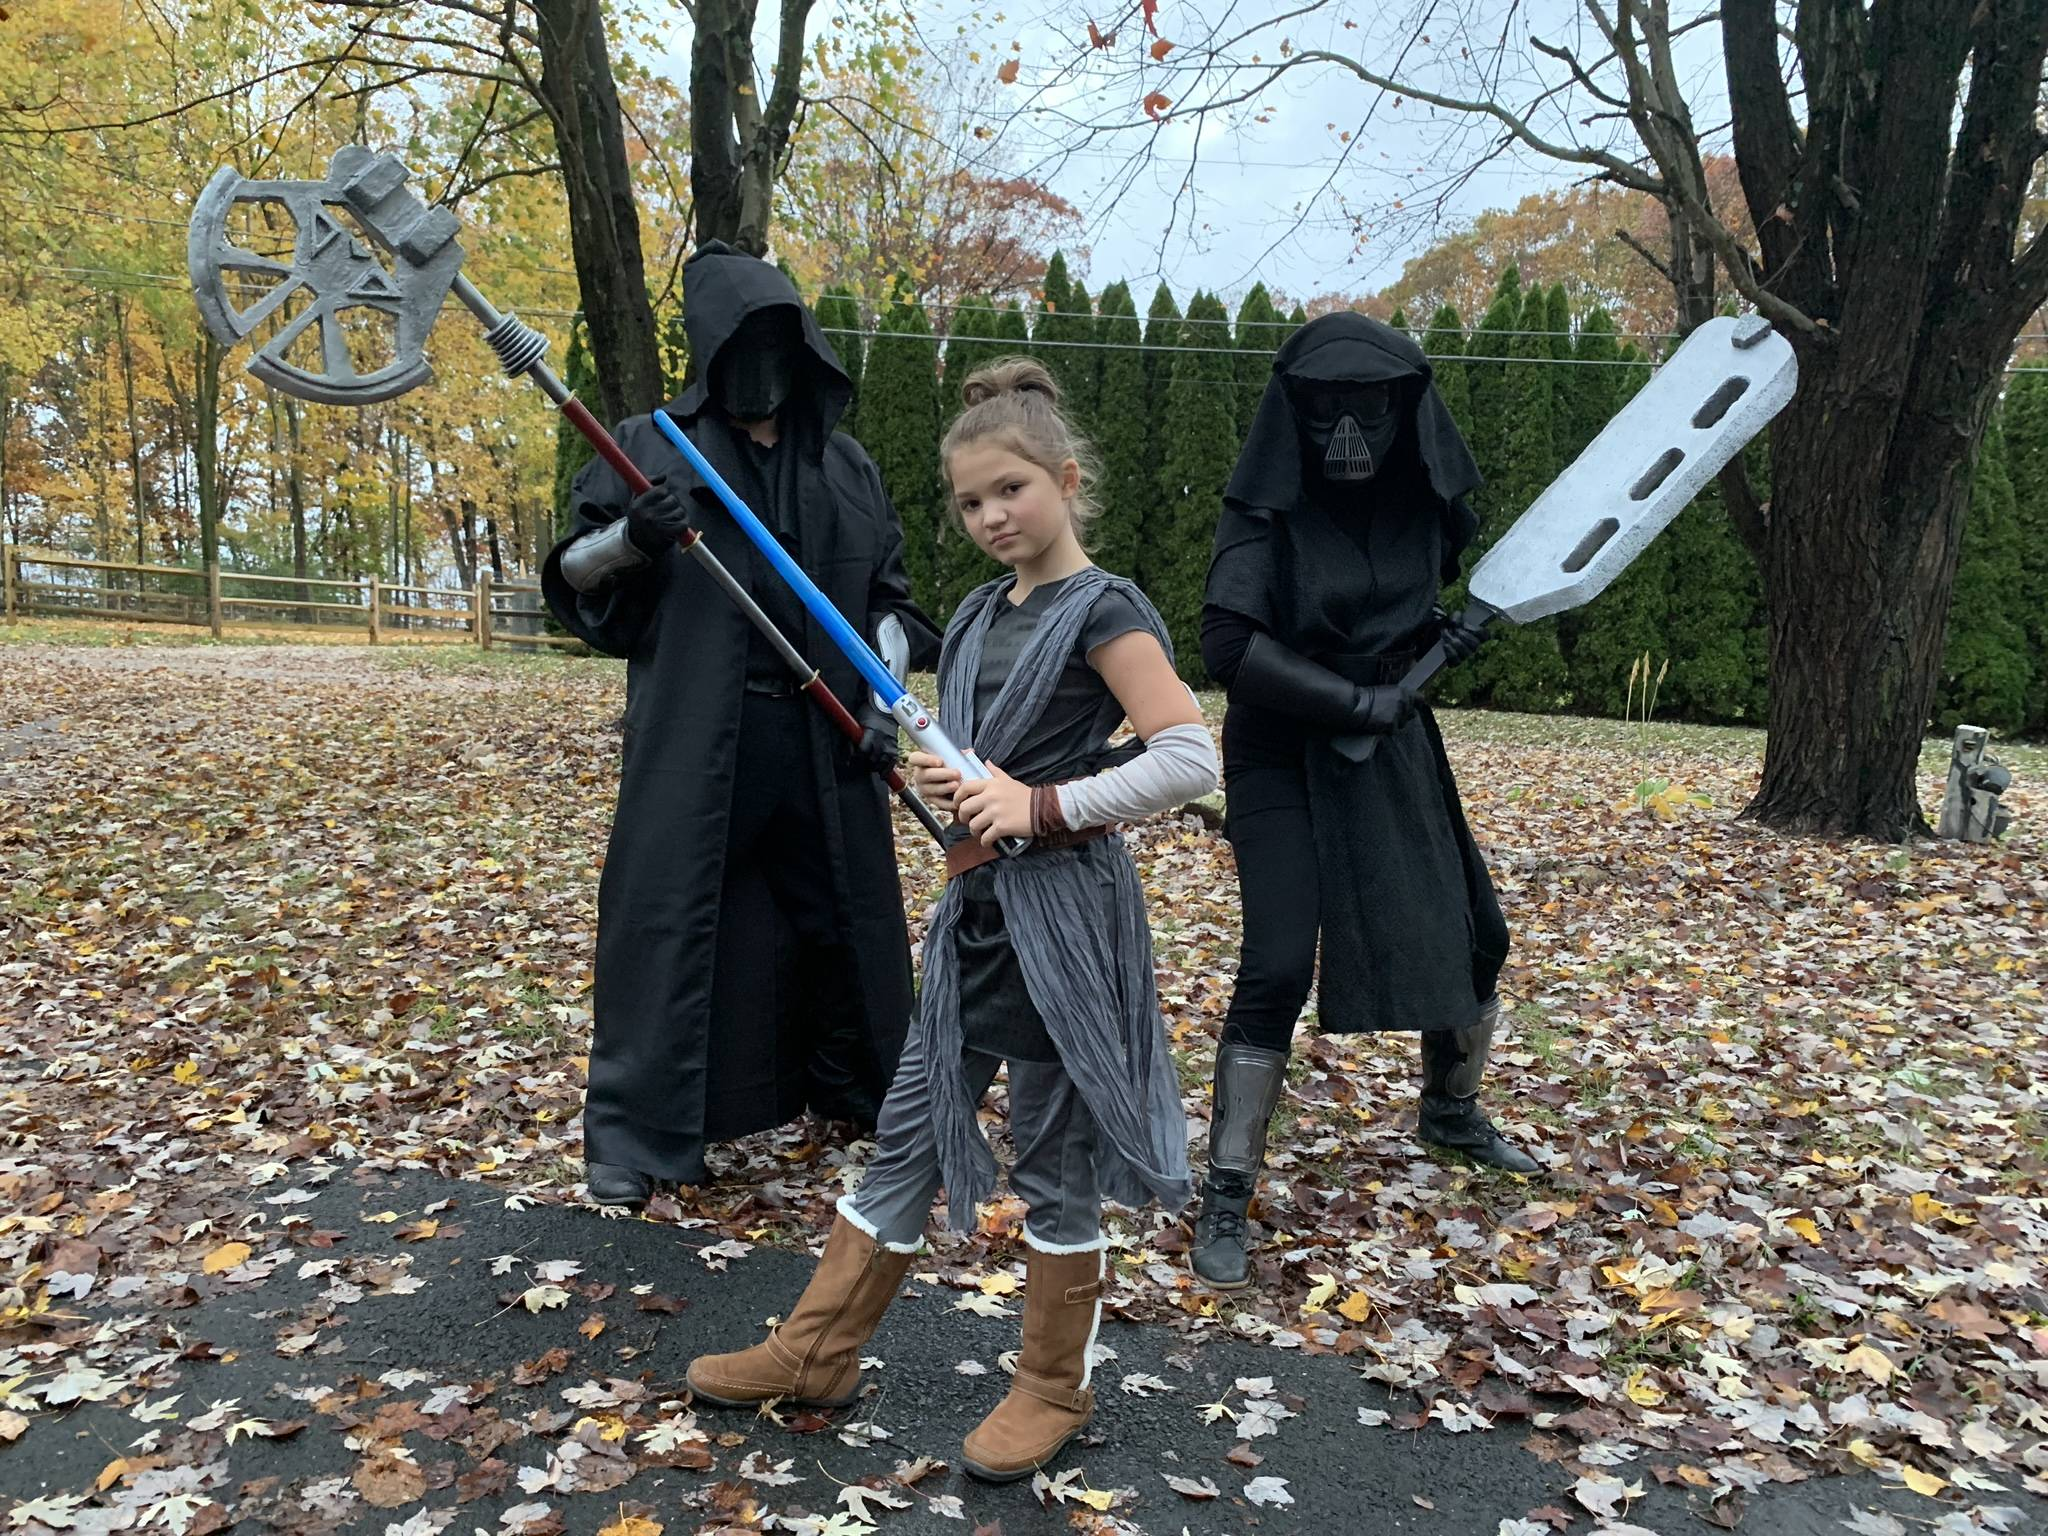 Knights of Ren and mini Rey